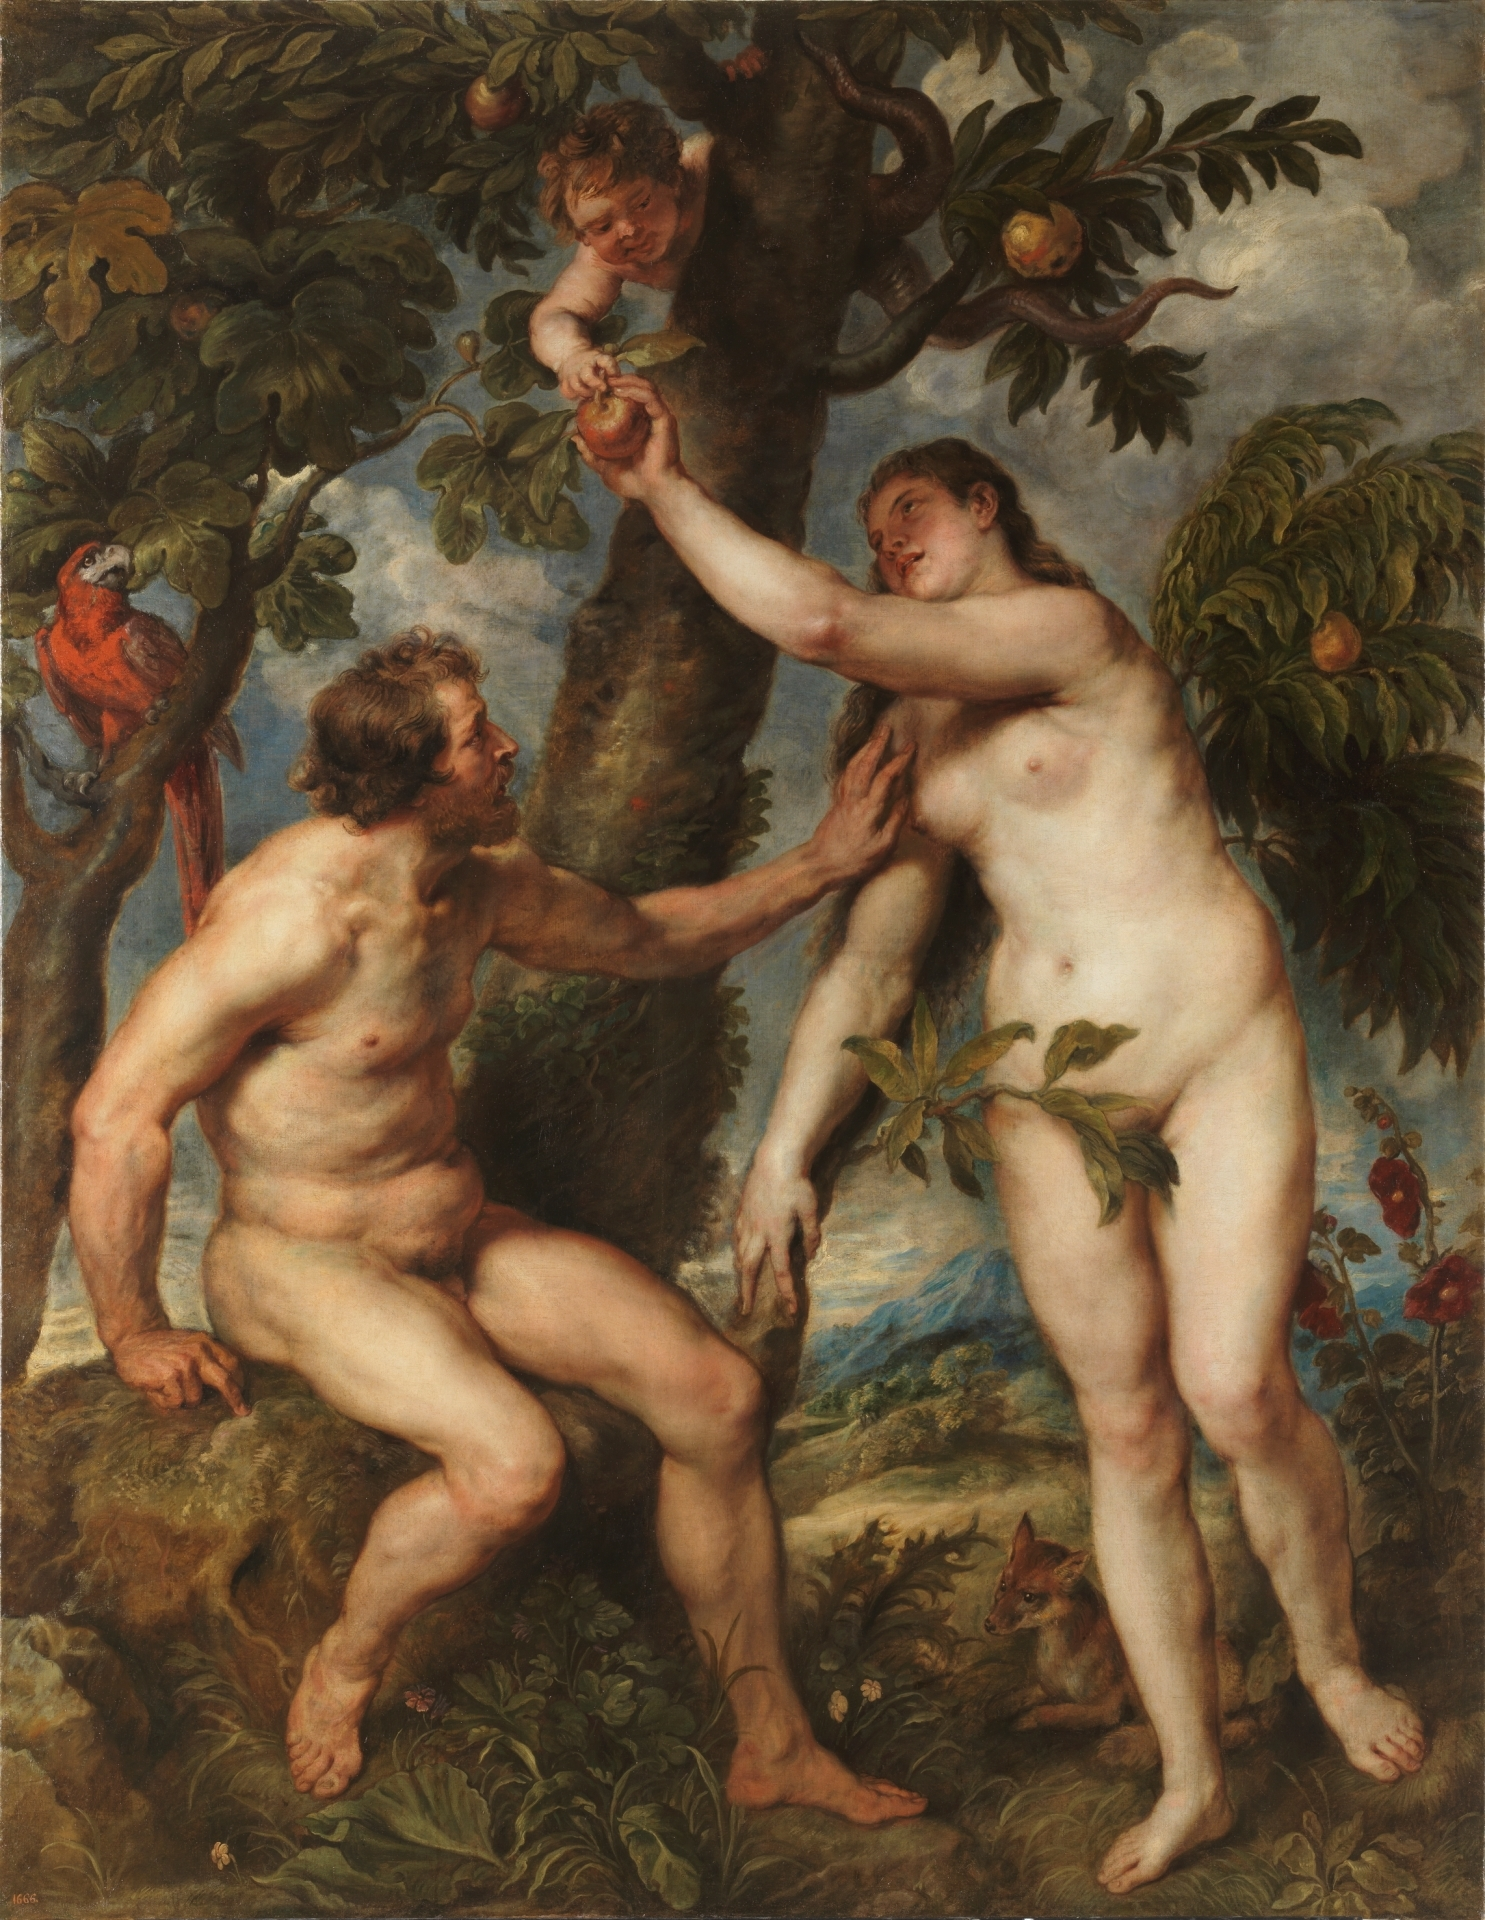 http://upload.wikimedia.org/wikipedia/commons/6/61/Peter_Paul_Rubens_004.jpg